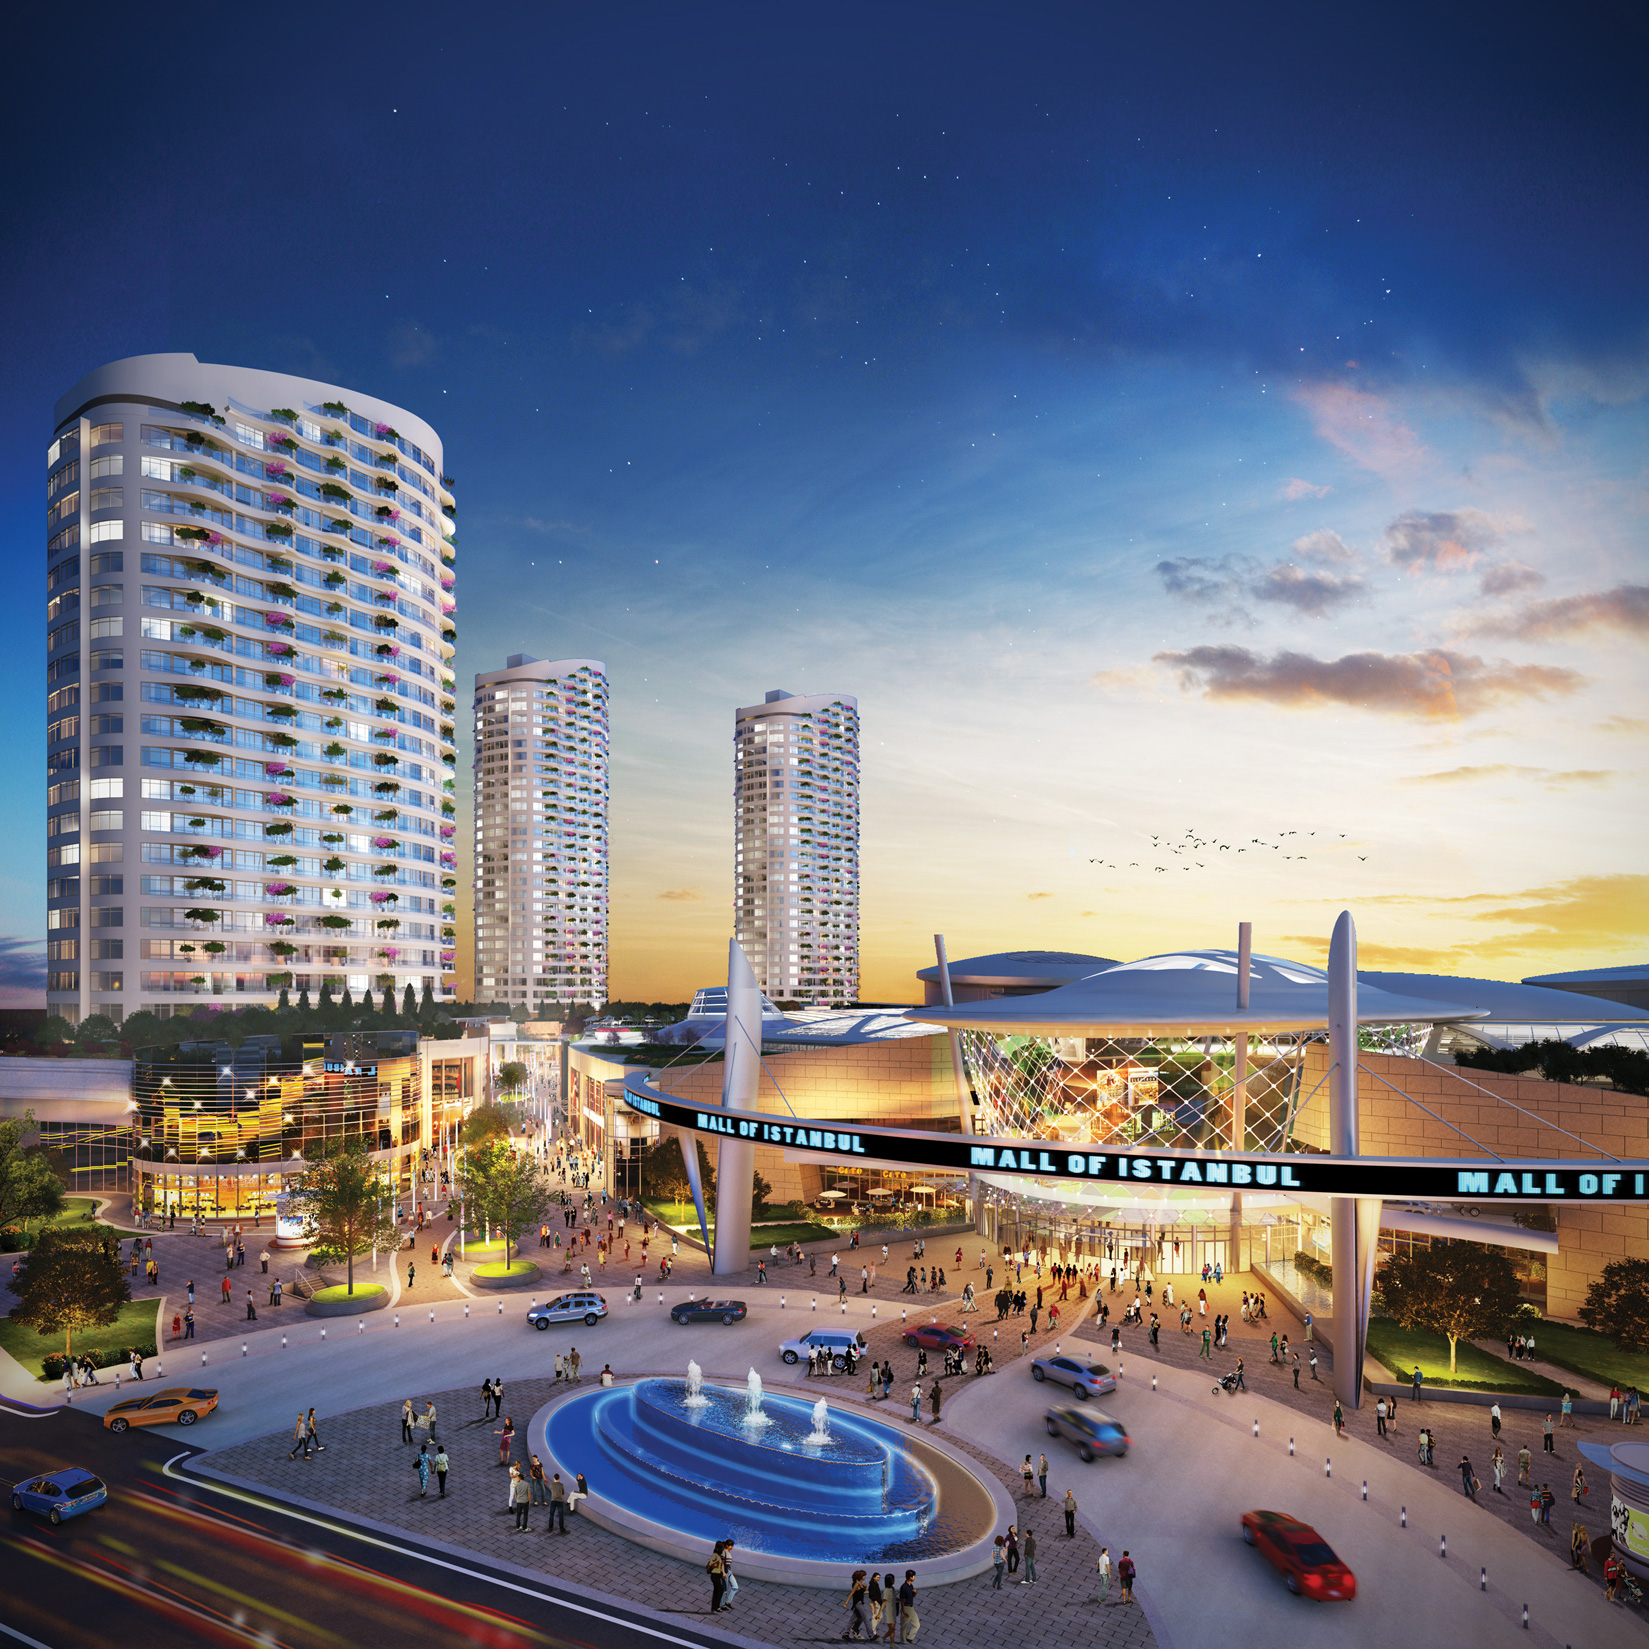 Mall of istanbul sales office ares architecture - Mall Of Istanbul Sales Office Ares Architecture 4